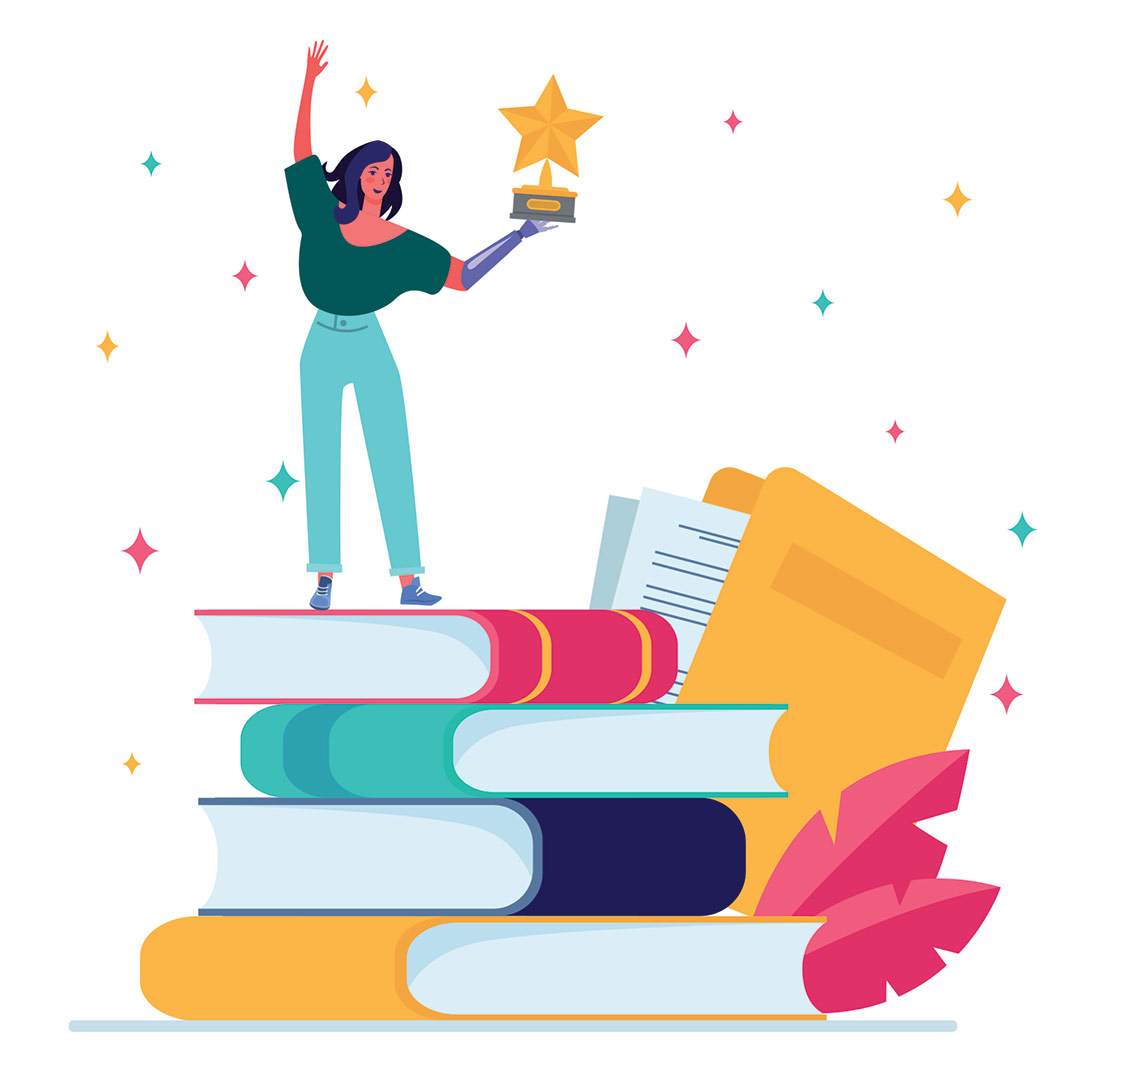 Person holding an award standing on oversized books